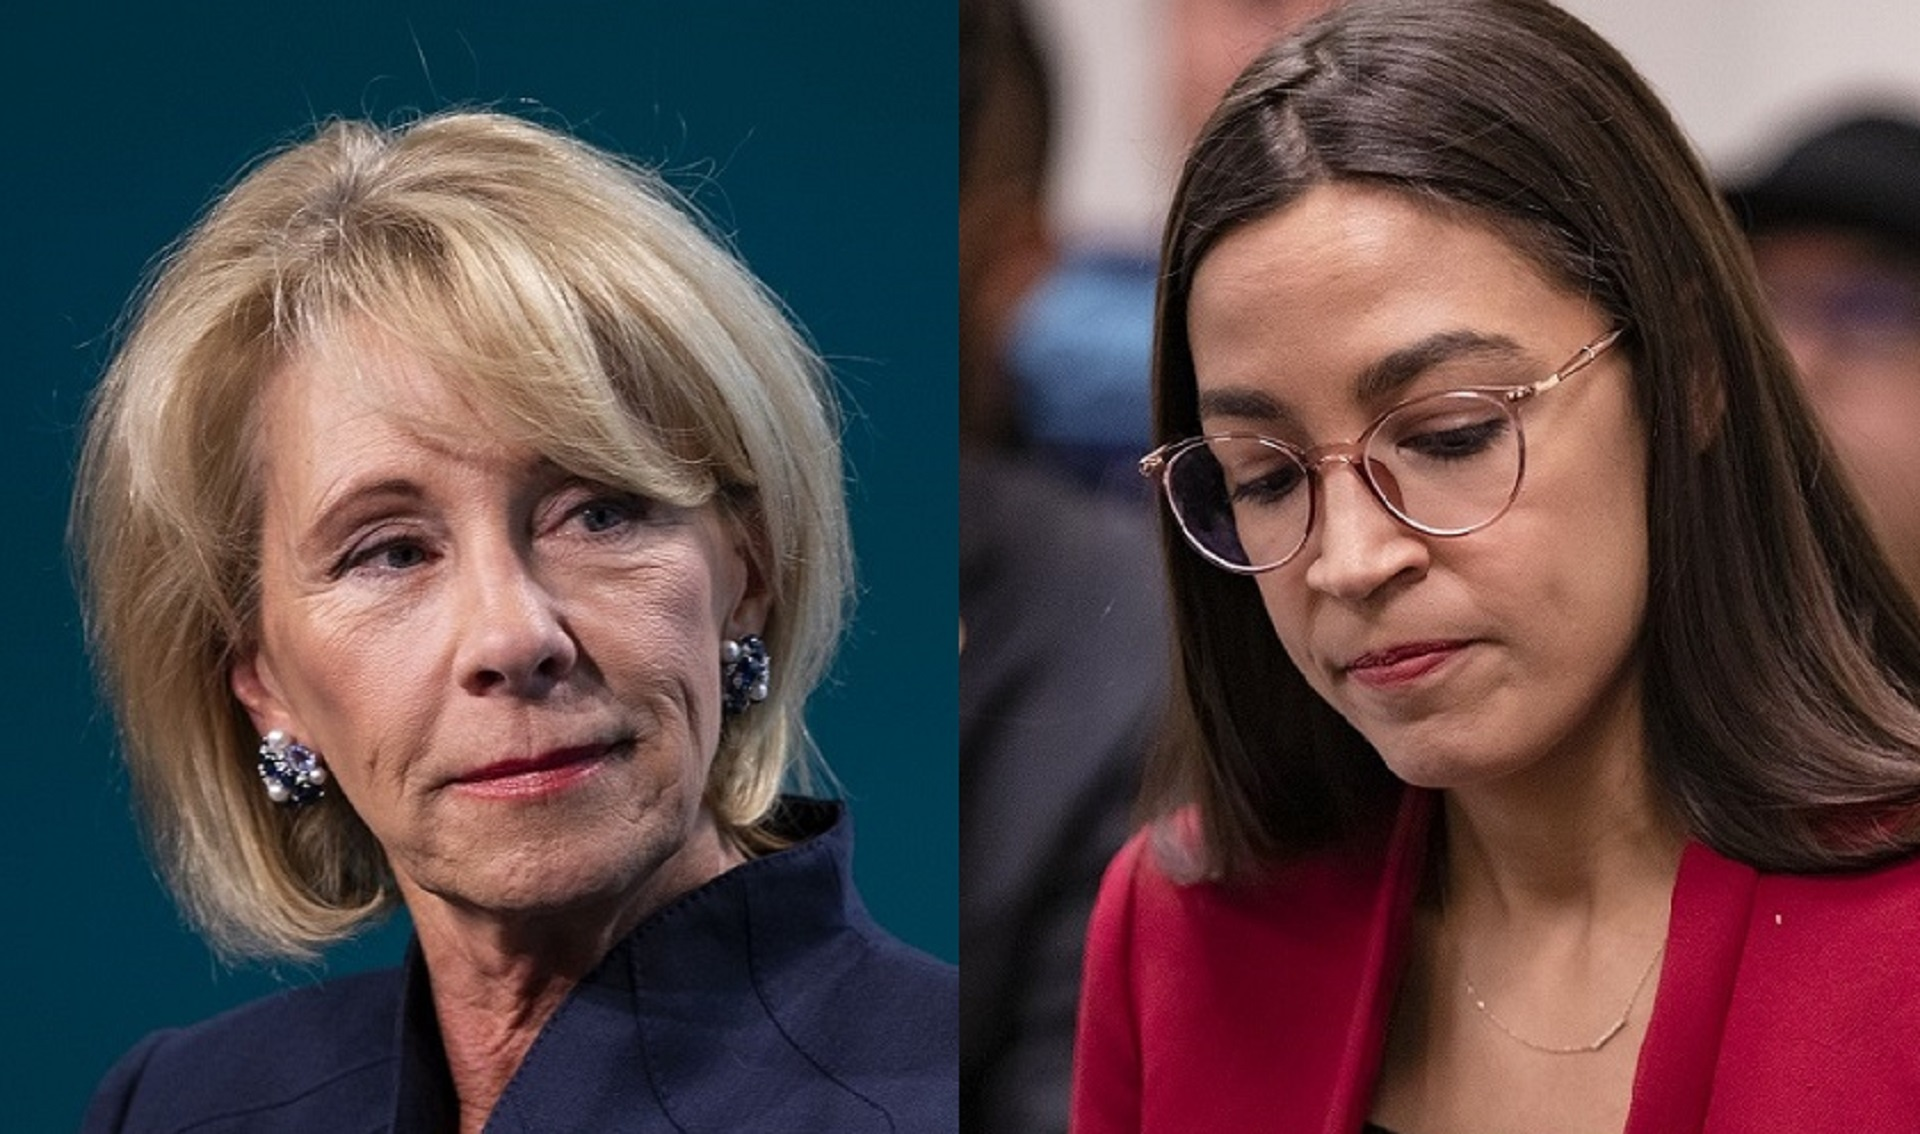 Education Secretary Betsy DeVos calls out AOC's hypocrisy on school choice